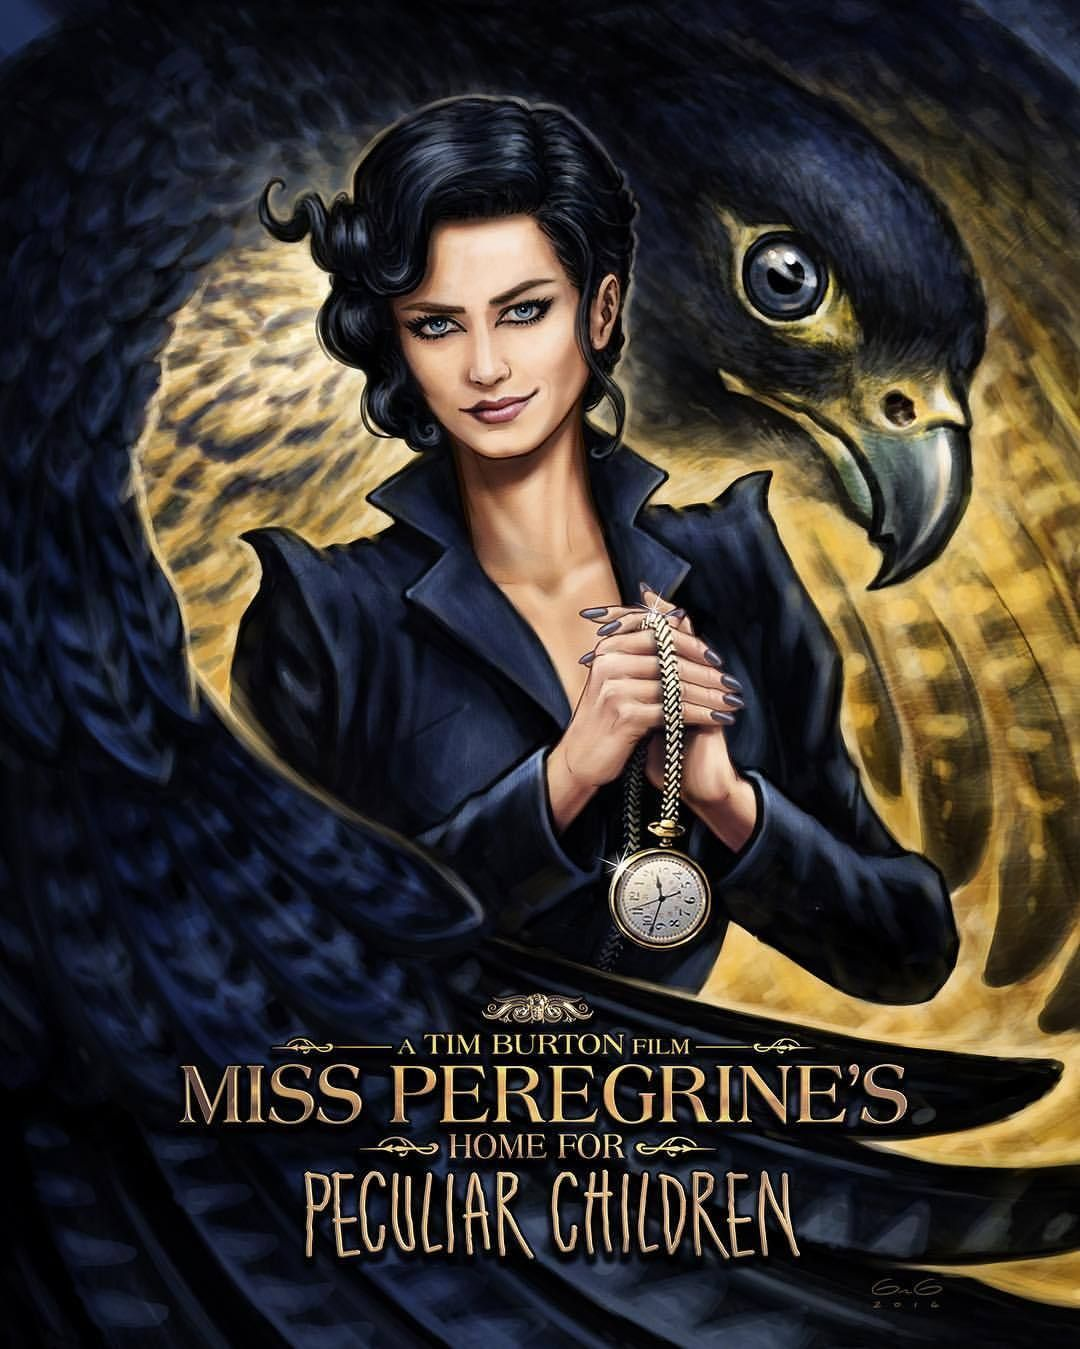 Miss Peregrine S Home For Peculiar Children Came Out In Theaters This Past Weekend You S Con Imagenes Ninos Peculiares Miss Peregrine Y Los Ninos Peculiares Miss Peregrine